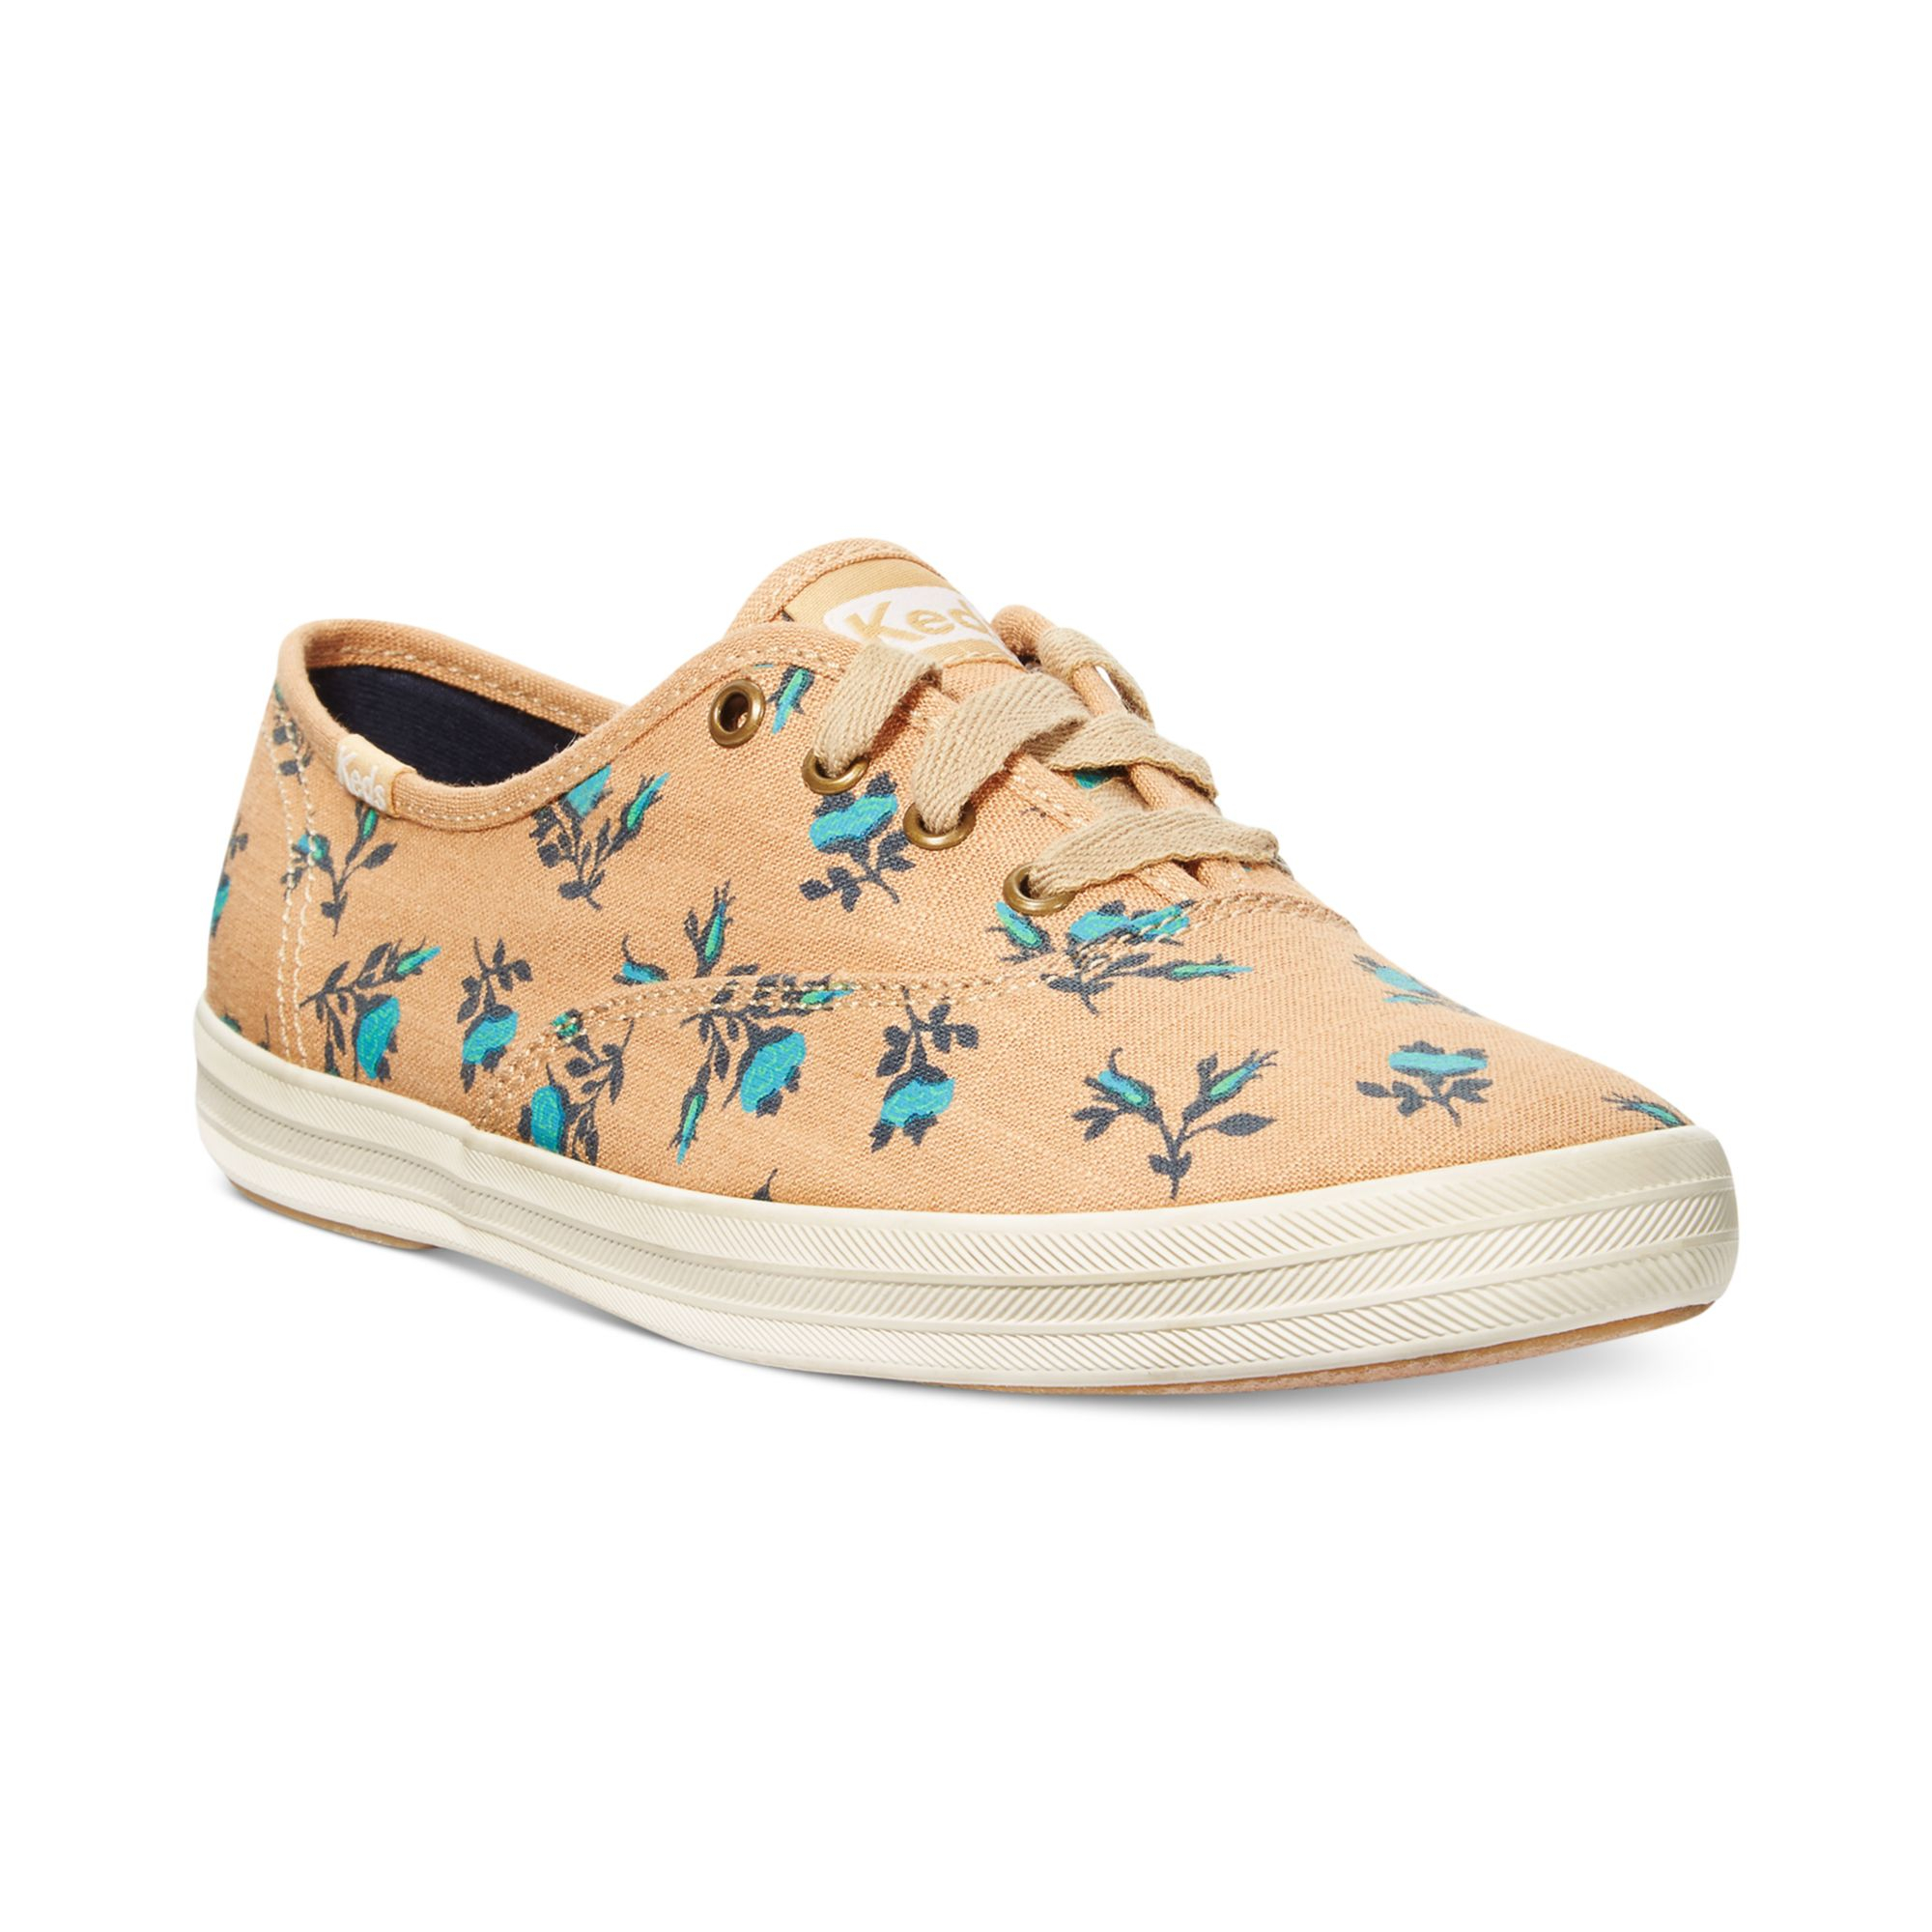 keds womens champion floral sneaker